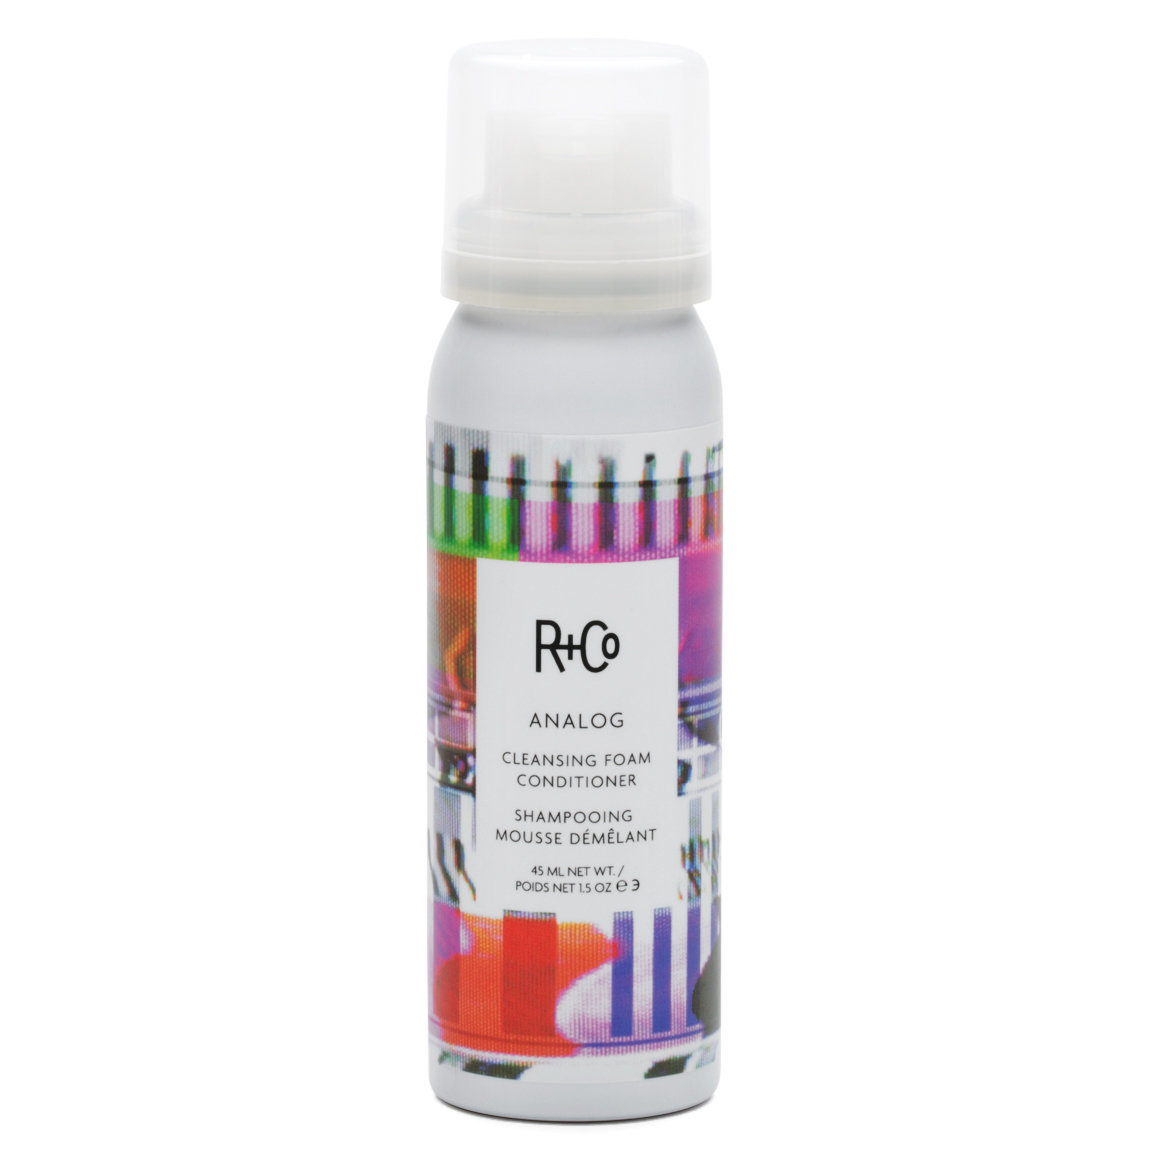 R+Co Analog Cleansing Foam Conditioner  1.5 oz alternative view 1 - product swatch.